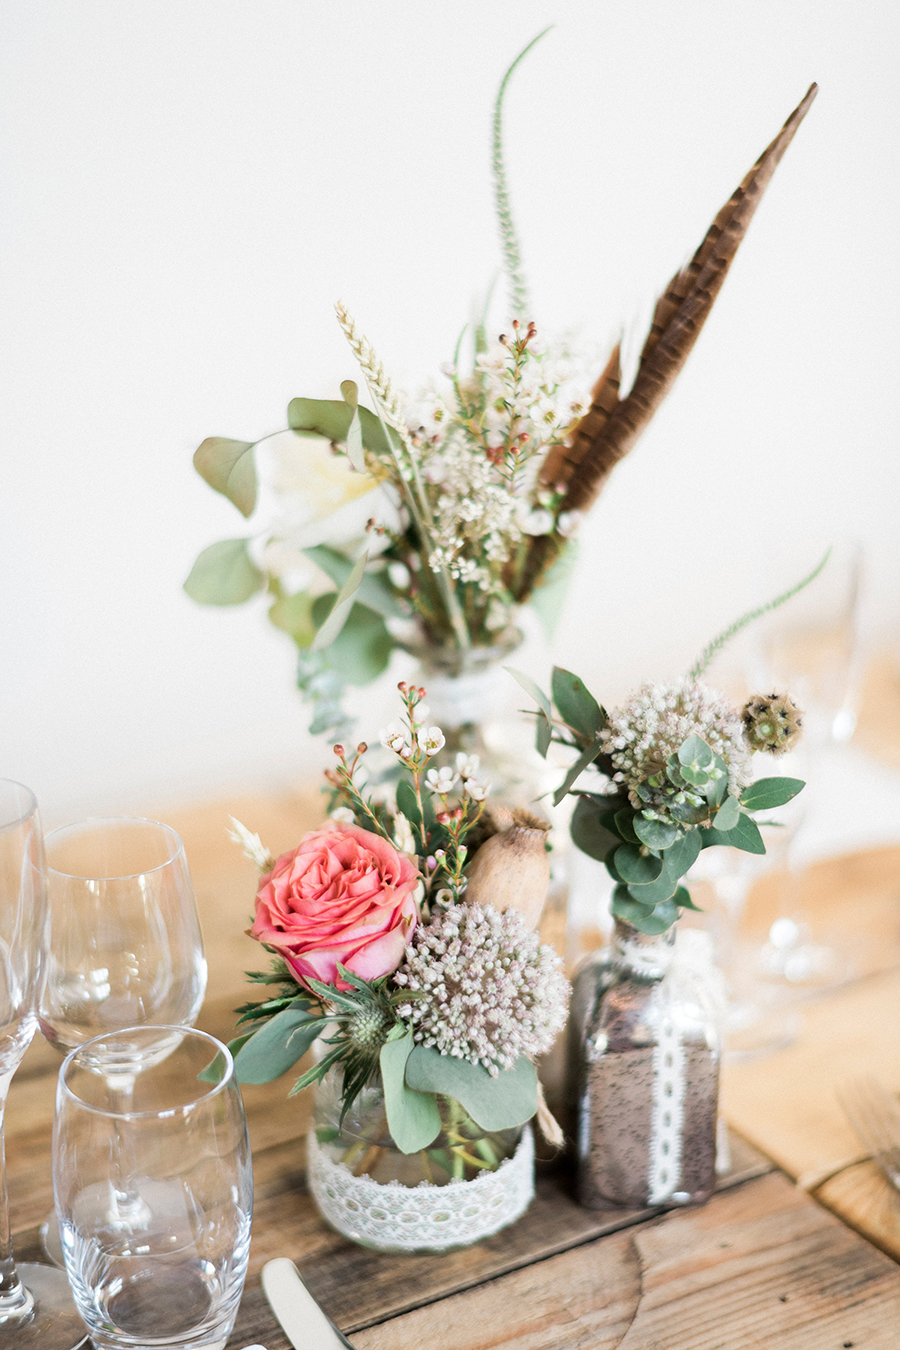 Dreamy boho wedding at Houchins Farm with images by Kathryn Hopkins Photography (8)